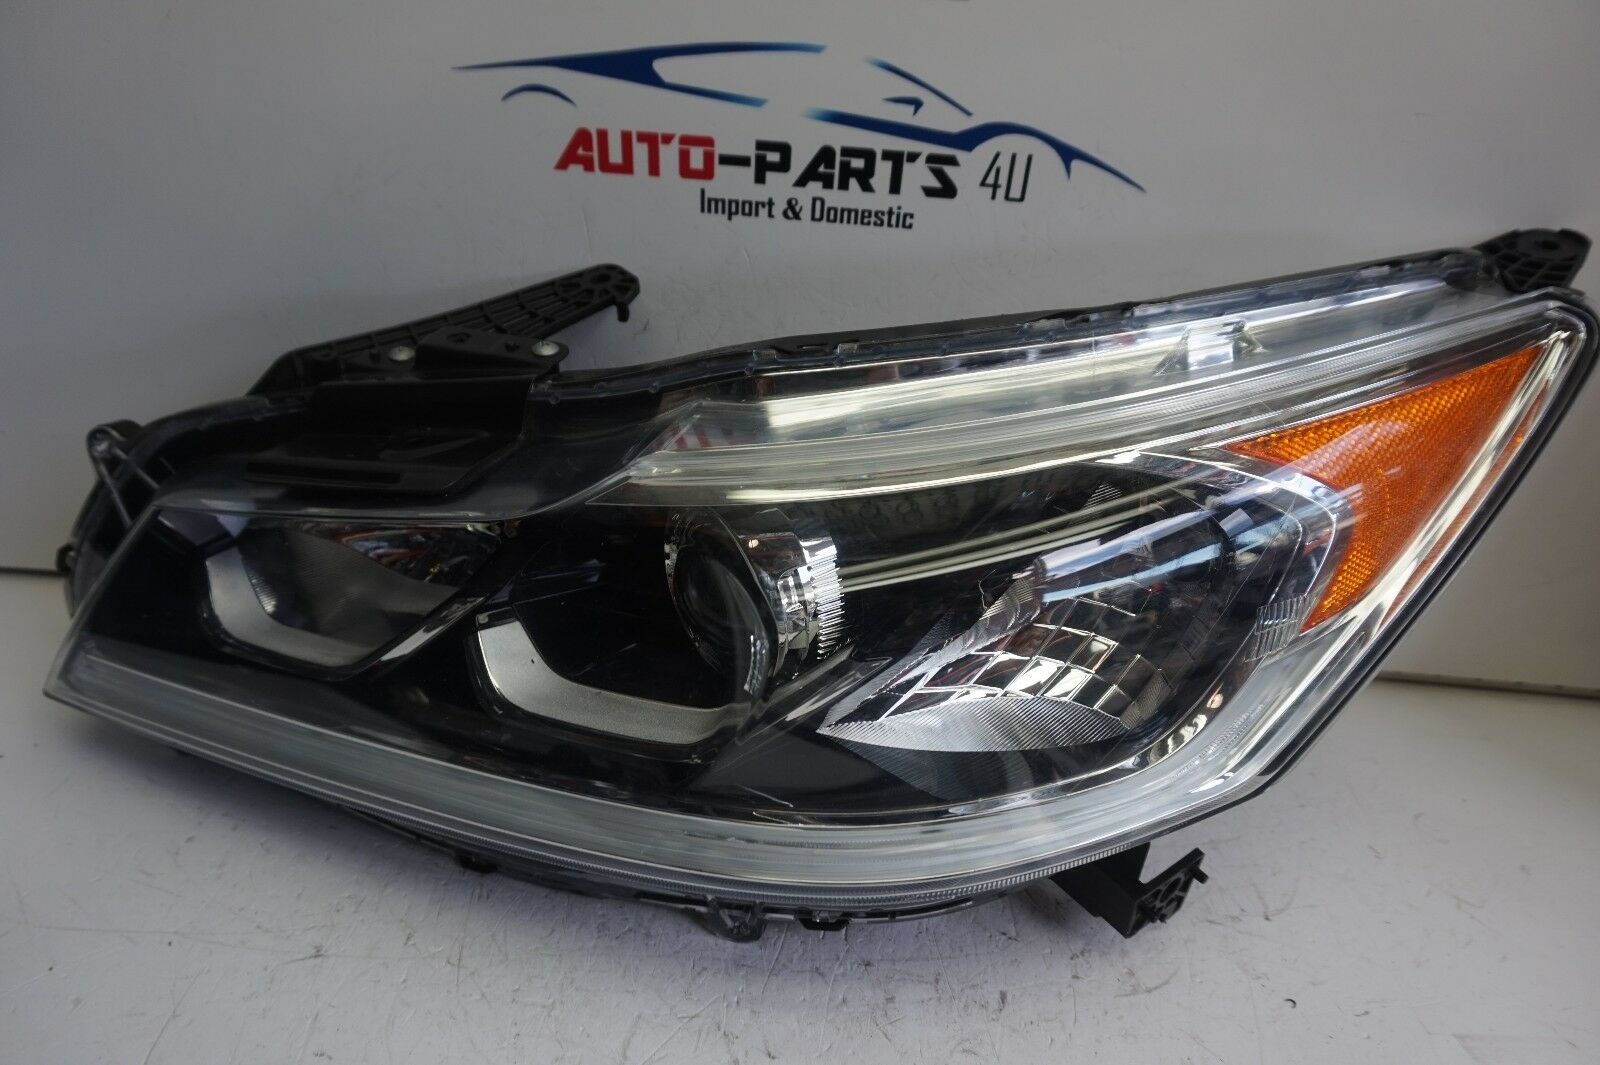 Tested 2016 2017 HONDA ACCORD SEDAN LEFT HALOGEN LED HEADLIGHT OEM 16 17 1  Of 11Only 4 Available See More